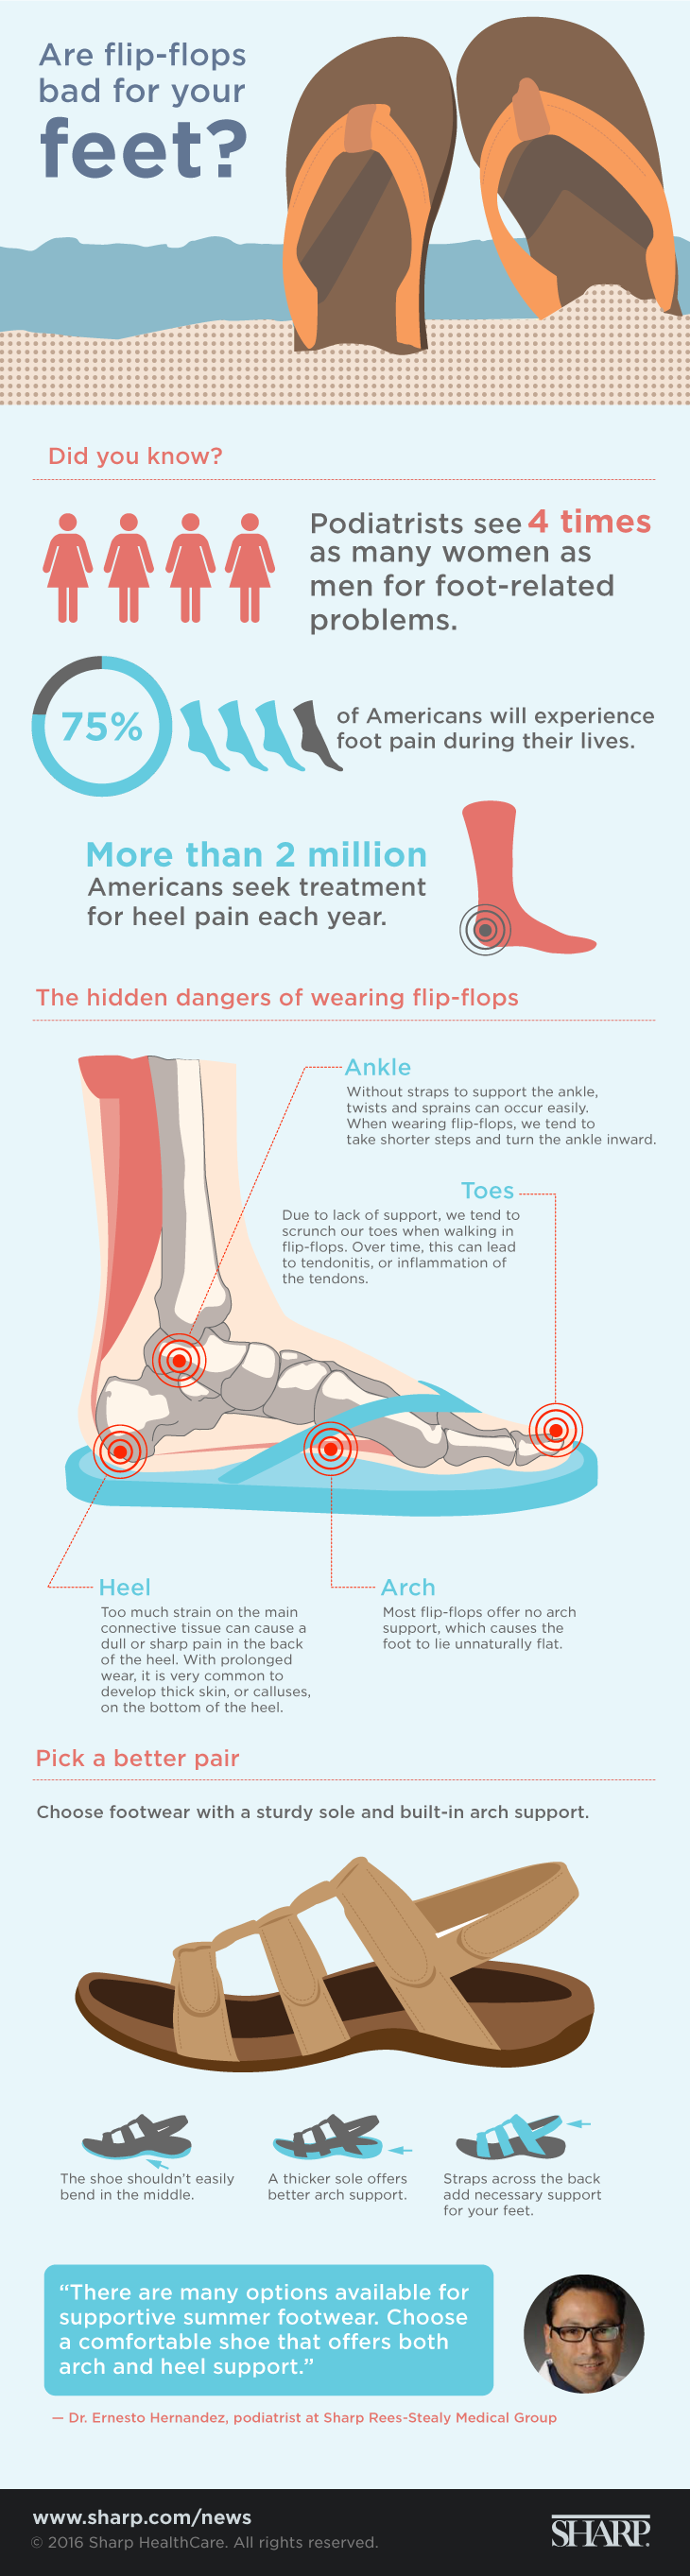 Are flip-flops bad for your feet? (infographic)